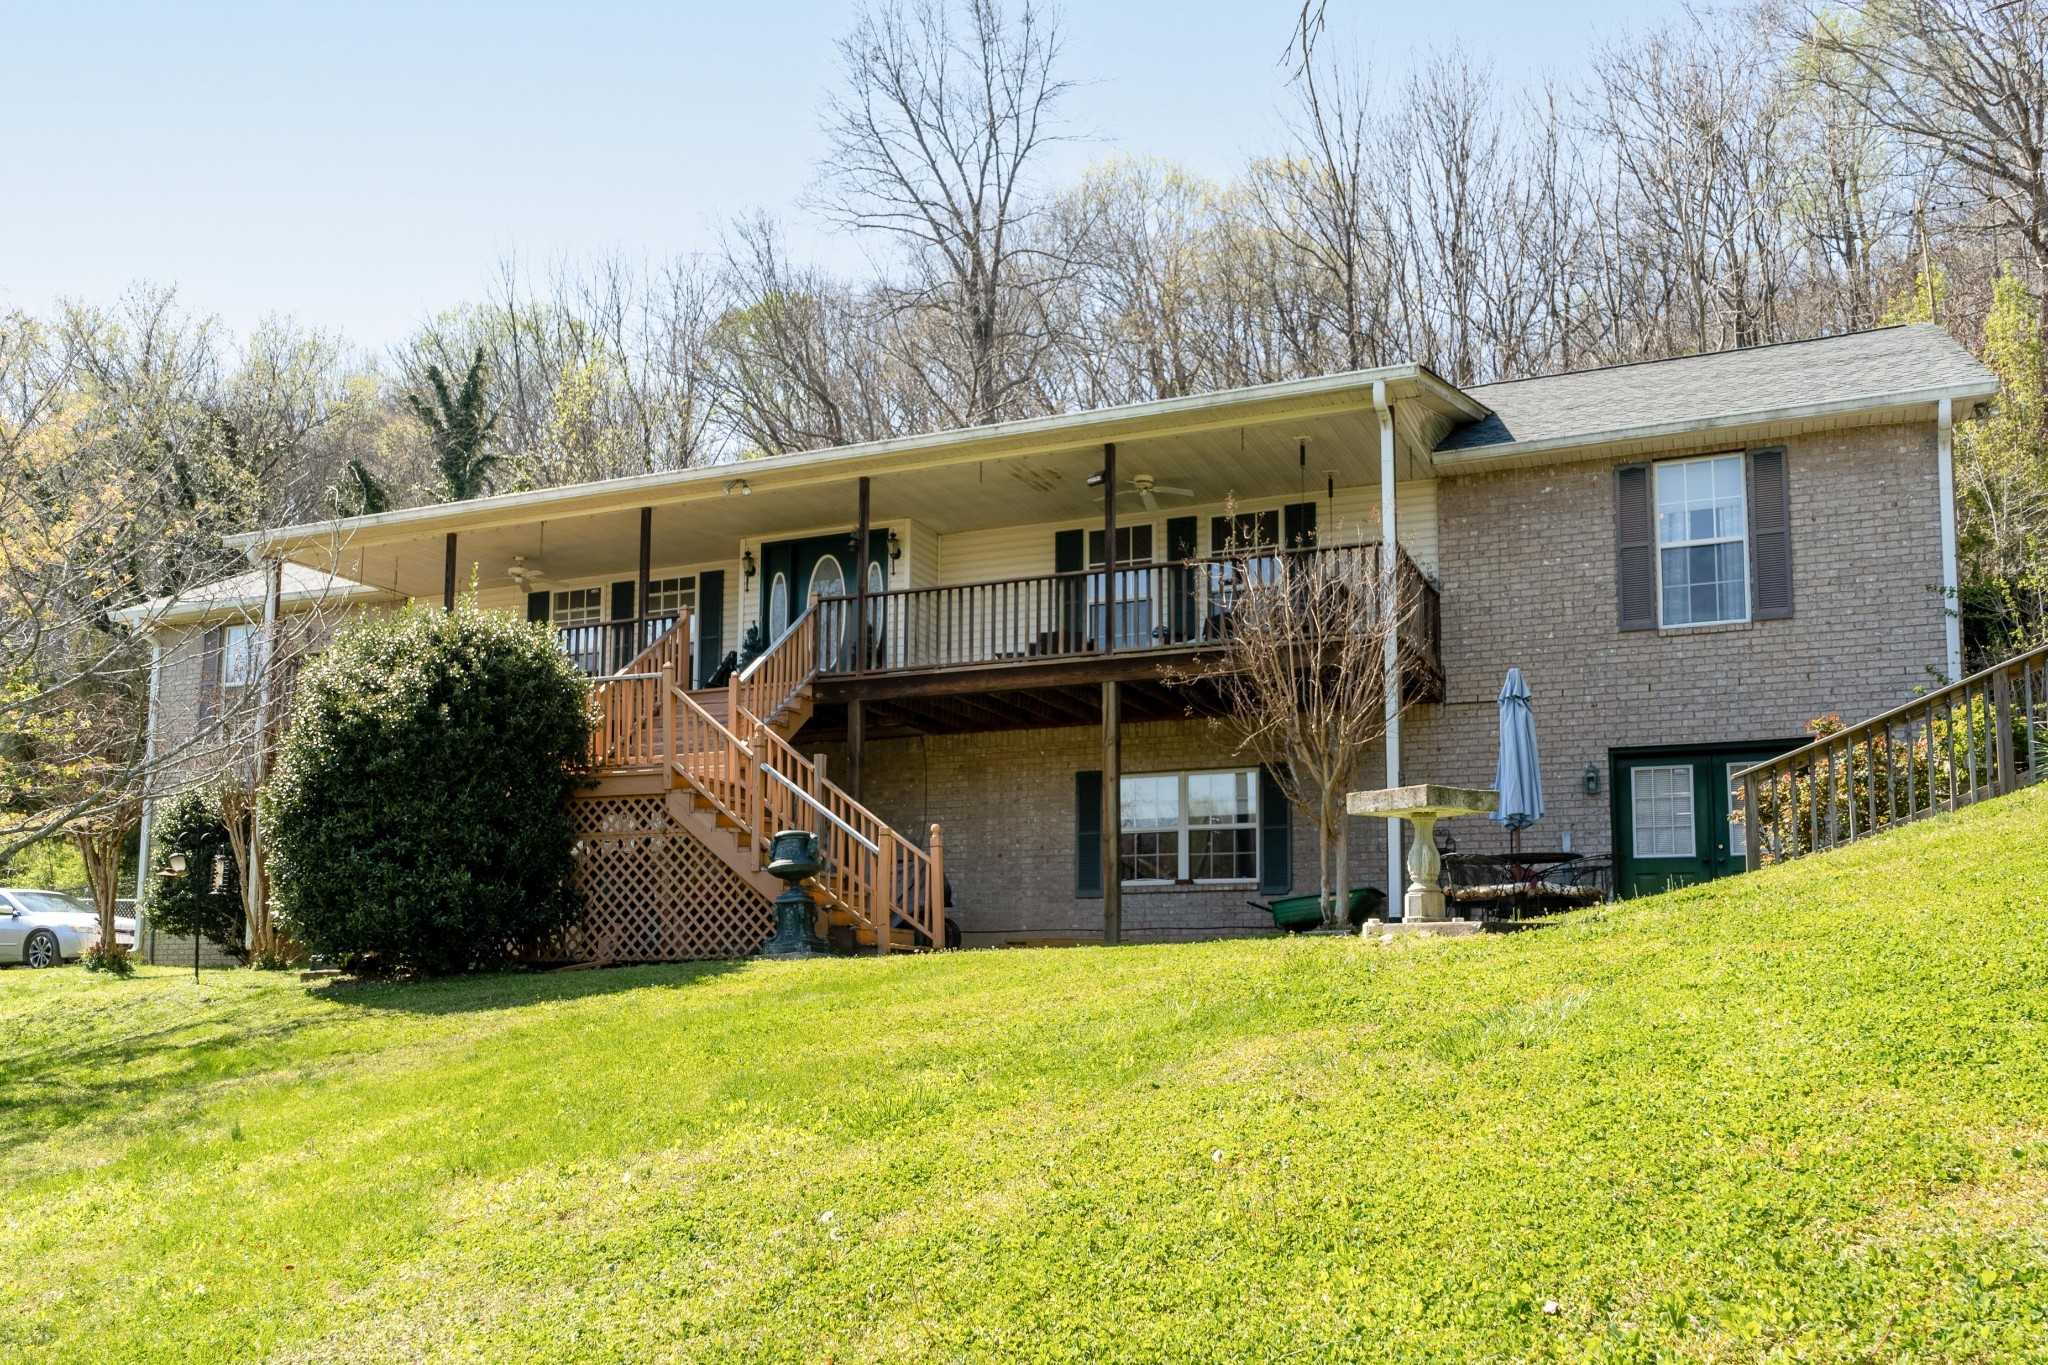 $599,000 - 4Br/6Ba -  for Sale in N/a, Goodlettsville